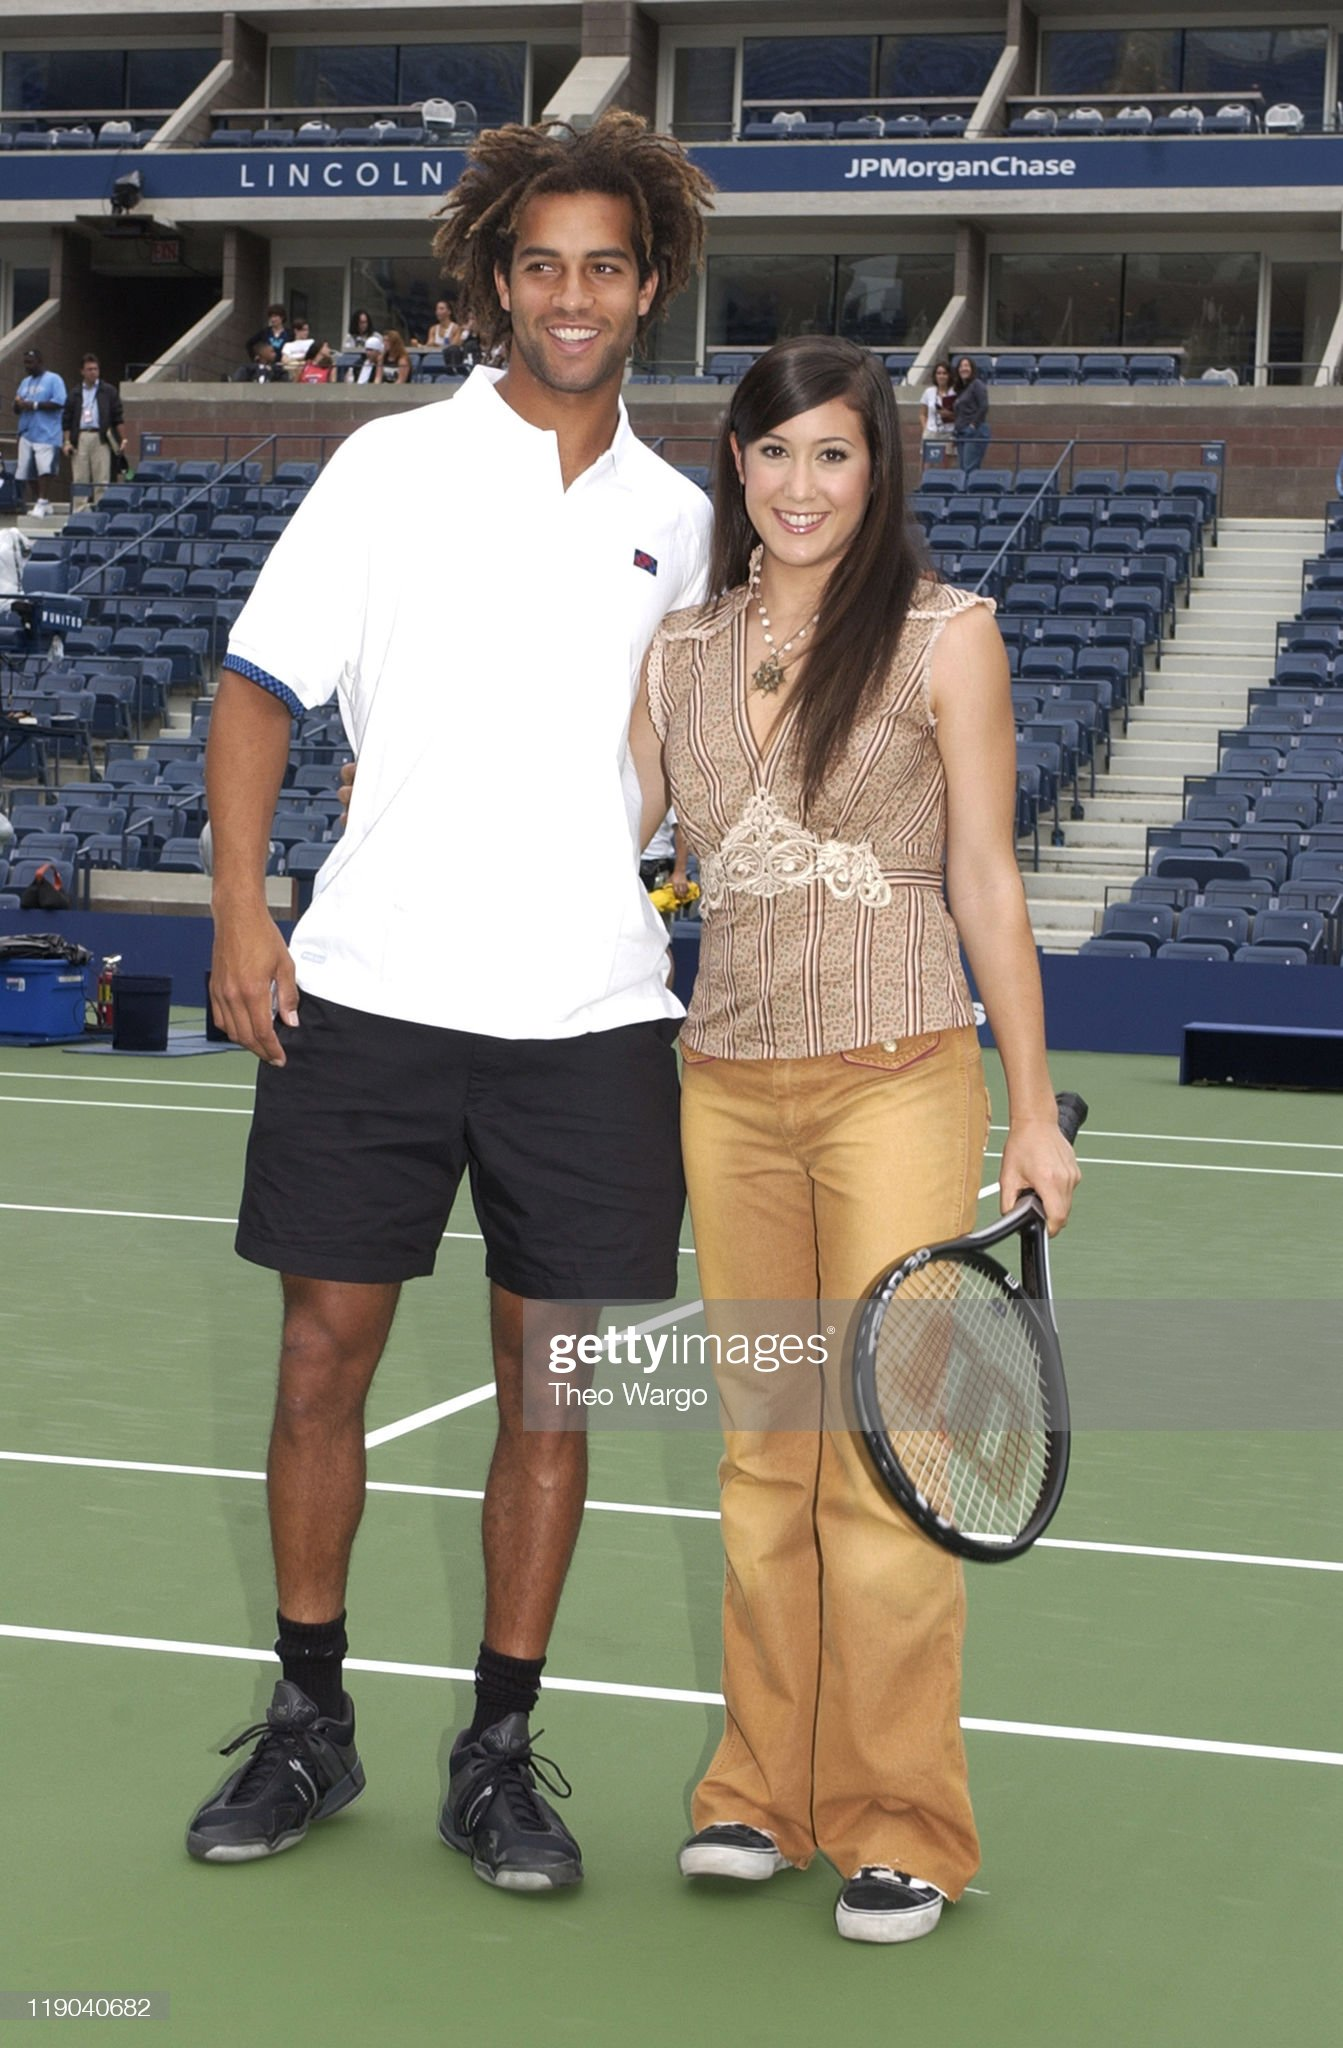 ¿Cuánto mide Vanessa Carlton? - Altura - Real height James-blake-and-vanessa-carlton-during-arthur-ashe-kids-day-tennis-picture-id119040682?s=2048x2048